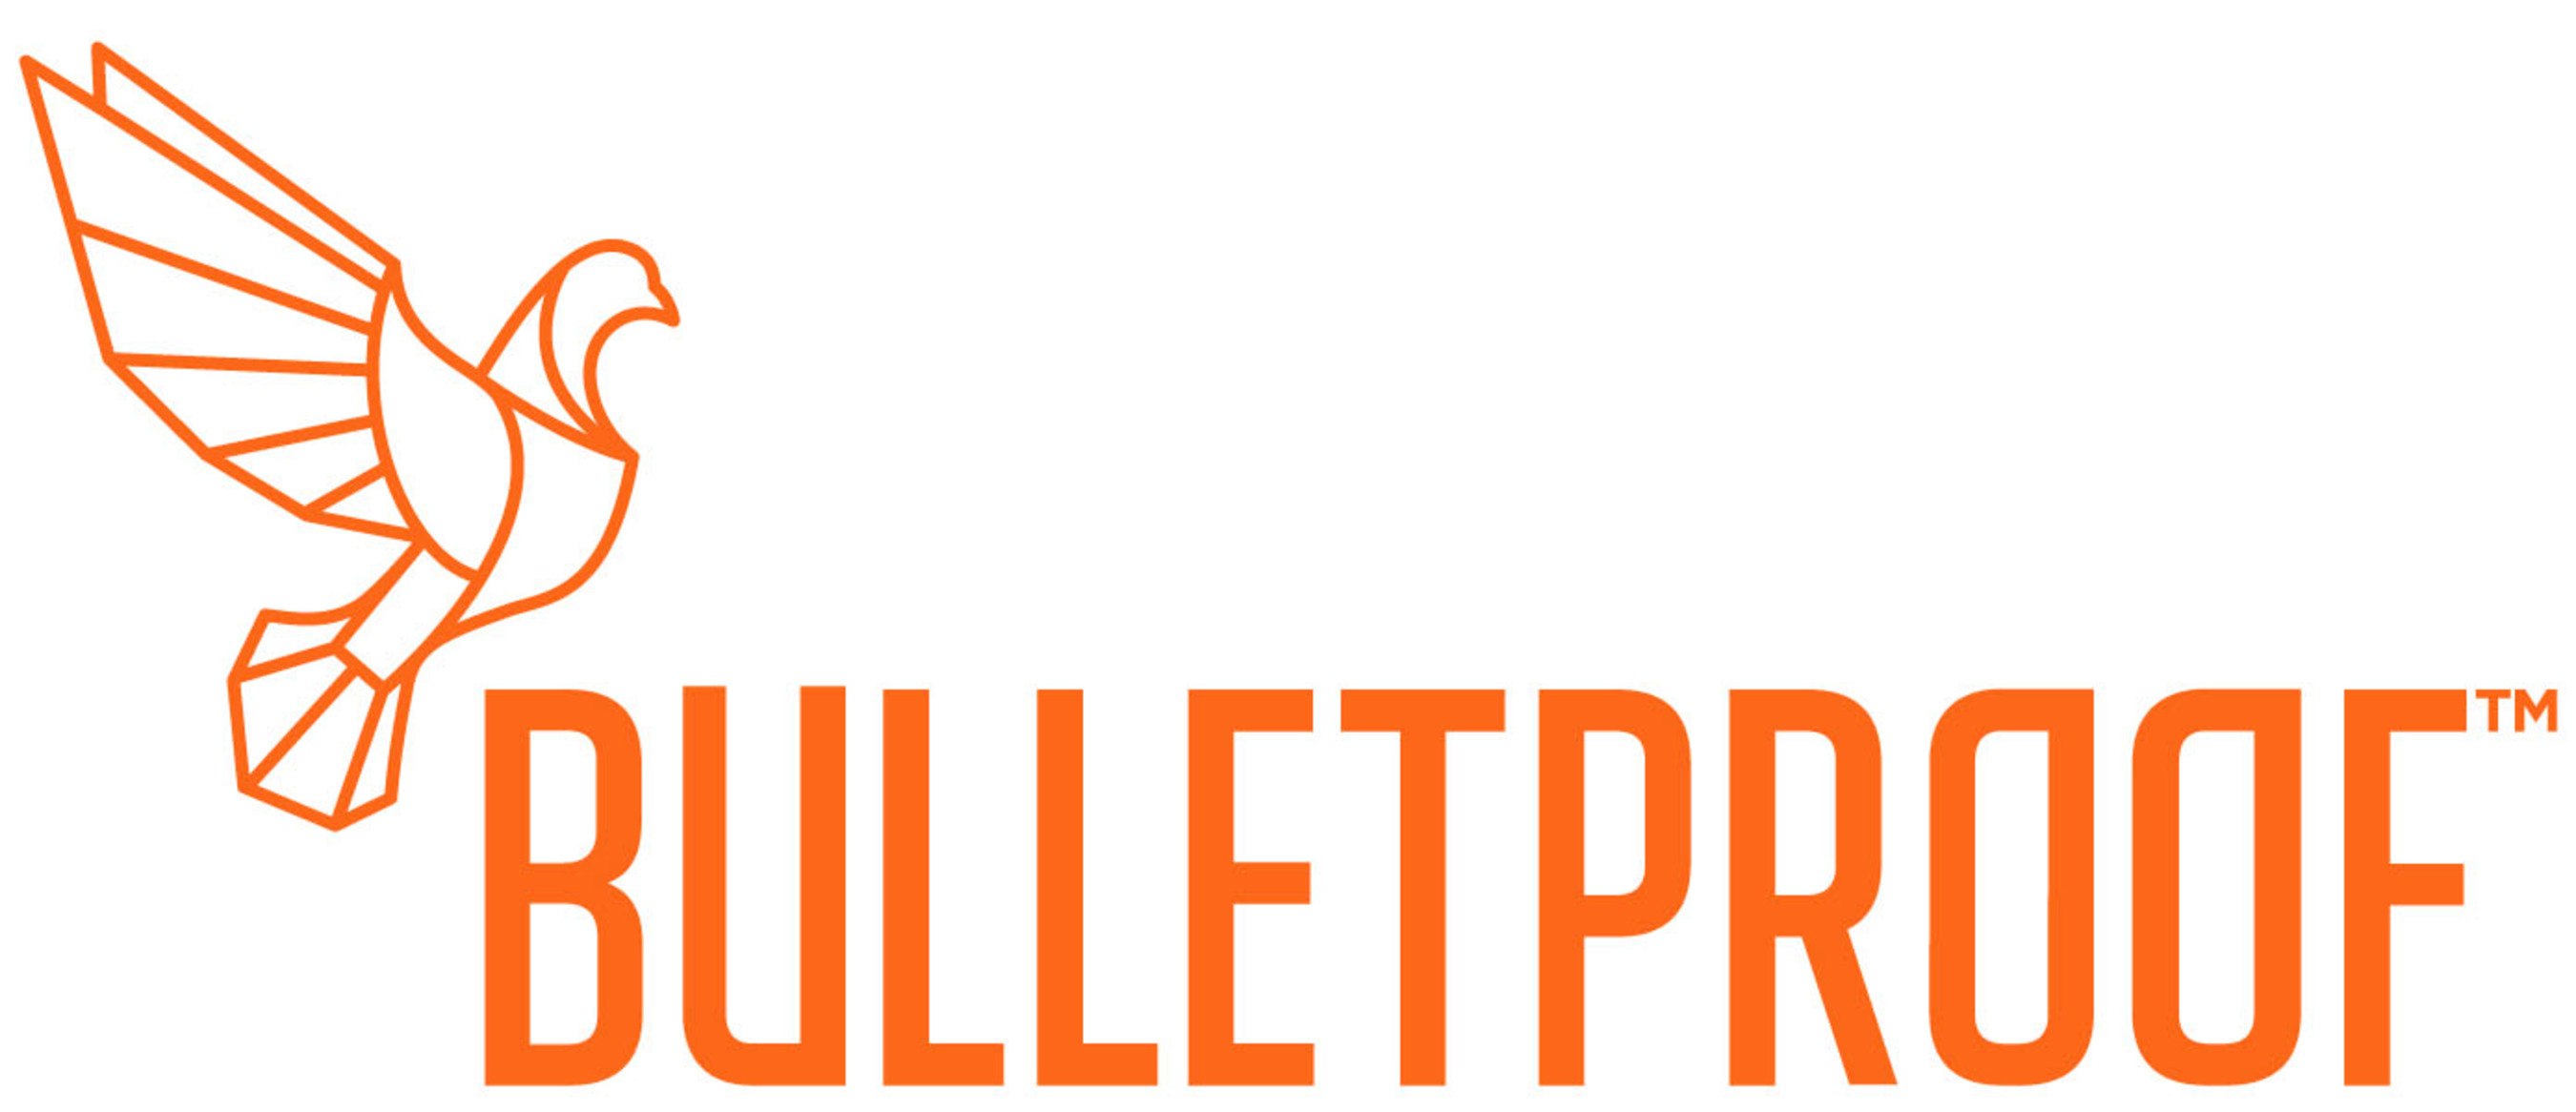 Image result for bulletproof logo